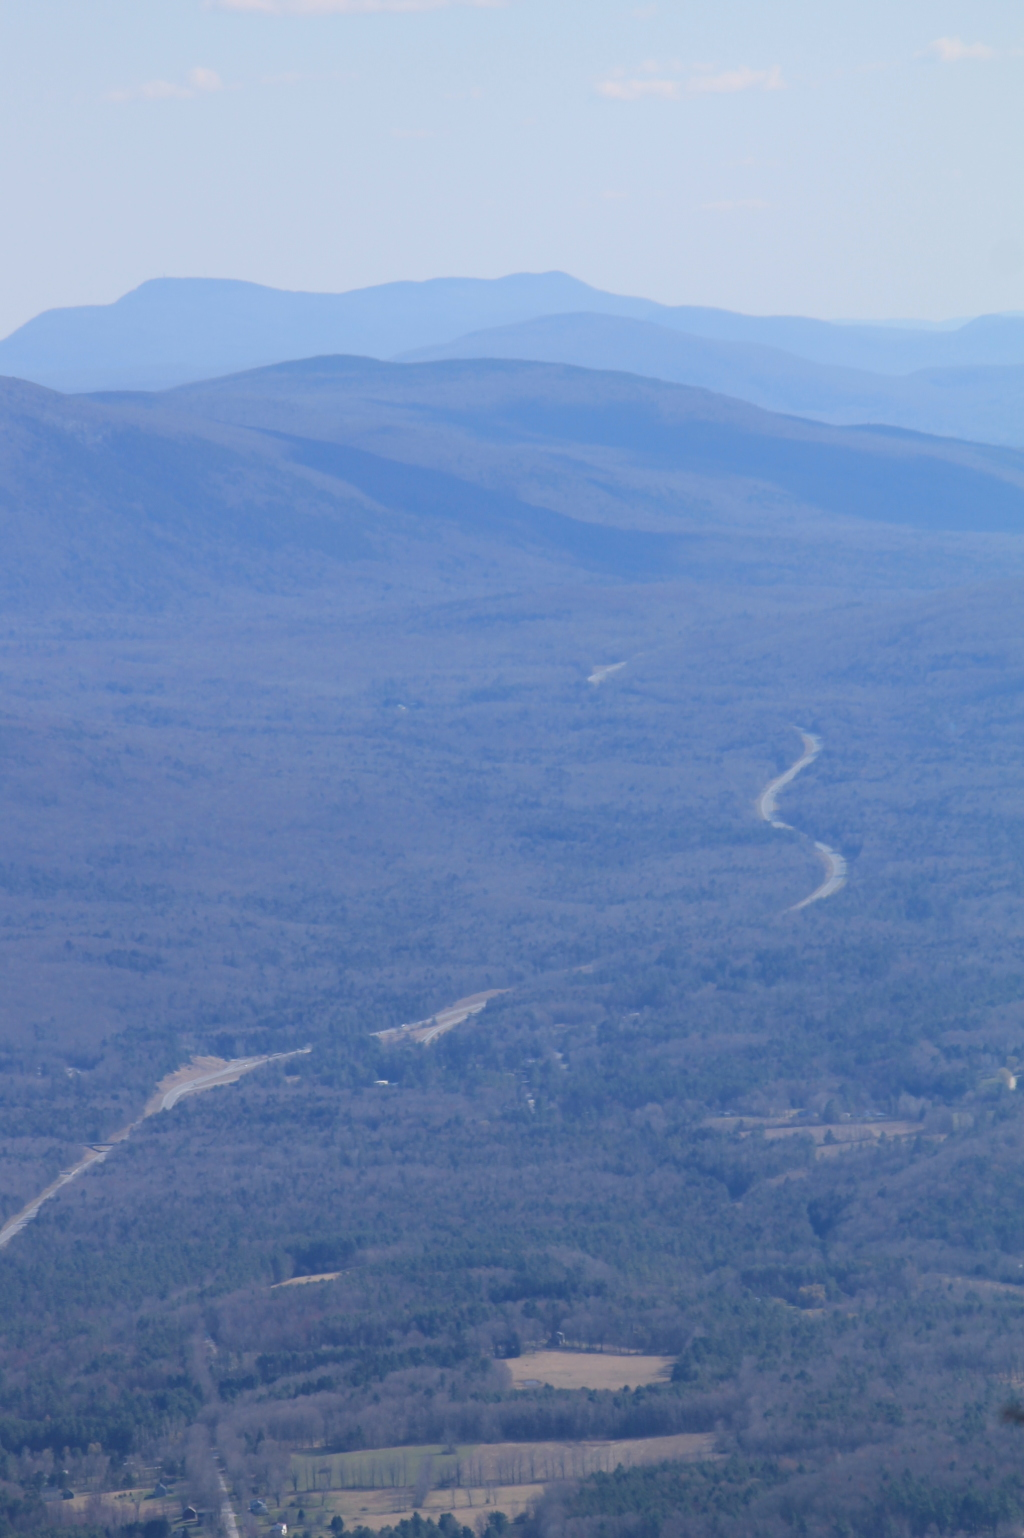 Photo: US 7 Winding Through Green Mountains